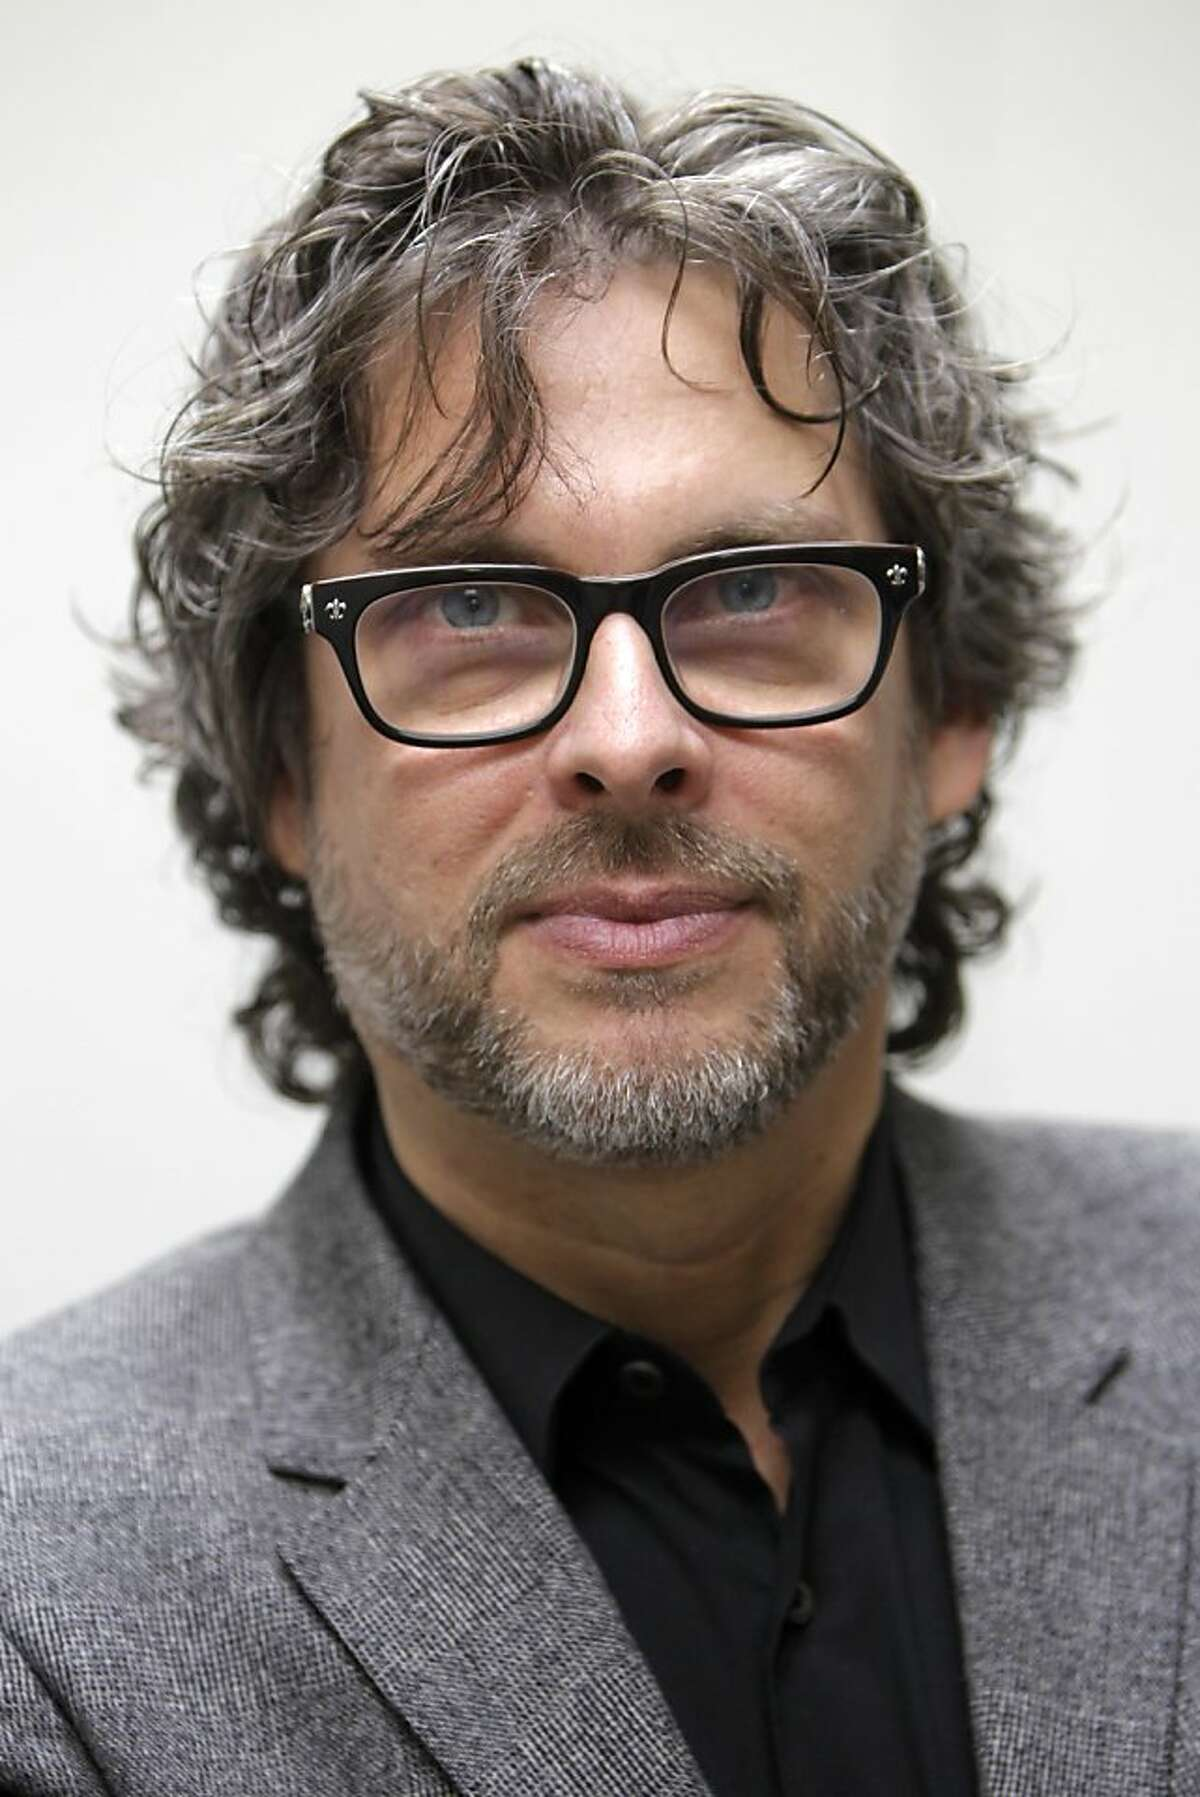 Author Michael Chabon poses for a photo in New York on Monday, Dec. 6, 2010. (AP Photo/Seth Wenig) Ran on: 12-12-2010 Photo caption Dummy text goes here. Dummy text goes here. Dummy text goes here. Dummy text goes here. Dummy text goes here. Dummy text goes here. Dummy text goes here. Dummy text goes here.###Photo: freshink12_chabonPH1291507200AP###Live Caption:Author Michael Chabon poses for a photo in New York on Monday, Dec. 6, 2010.###Caption History:Author Michael Chabon poses for a photo in New York on Monday, Dec. 6, 2010. (AP Photo-Seth Wenig)###Notes:Michael Chabon###Special Instructions: Ran on: 12-12-2010 Photo caption Dummy text goes here. Dummy text goes here. Dummy text goes here. Dummy text goes here. Dummy text goes here. Dummy text goes here. Dummy text goes here. Dummy text goes here.###Photo: freshink12_chabonPH1291507200AP###Live Caption:Author Michael Chabon poses for a photo in New York on Monday, Dec. 6, 2010.###Caption History:Author Michael Chabon poses for a photo in New York on Monday, Dec. 6, 2010. (AP Photo-Seth Wenig)###Notes:Michael Chabon###Special Instructions: